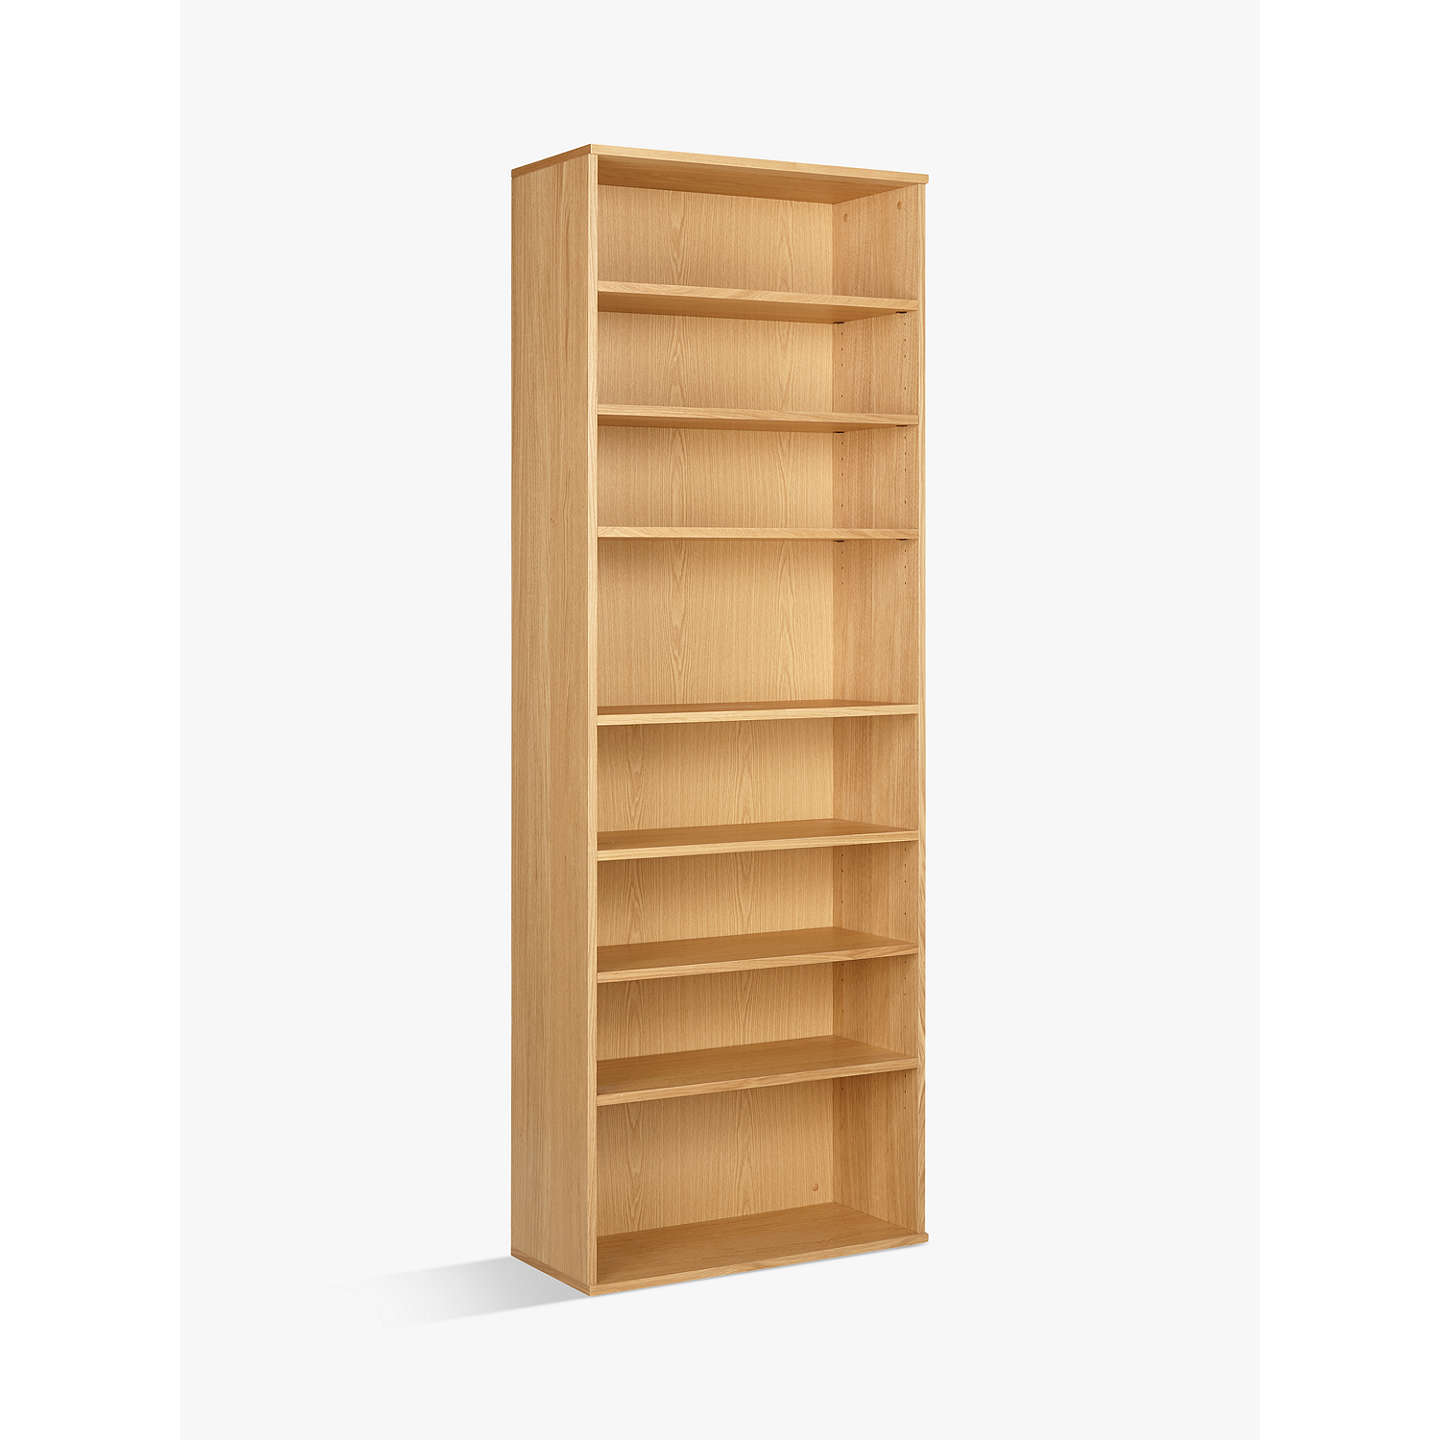 chocolate southshore collection shown south shore two magnifier axess heights bookcase all raw shelf